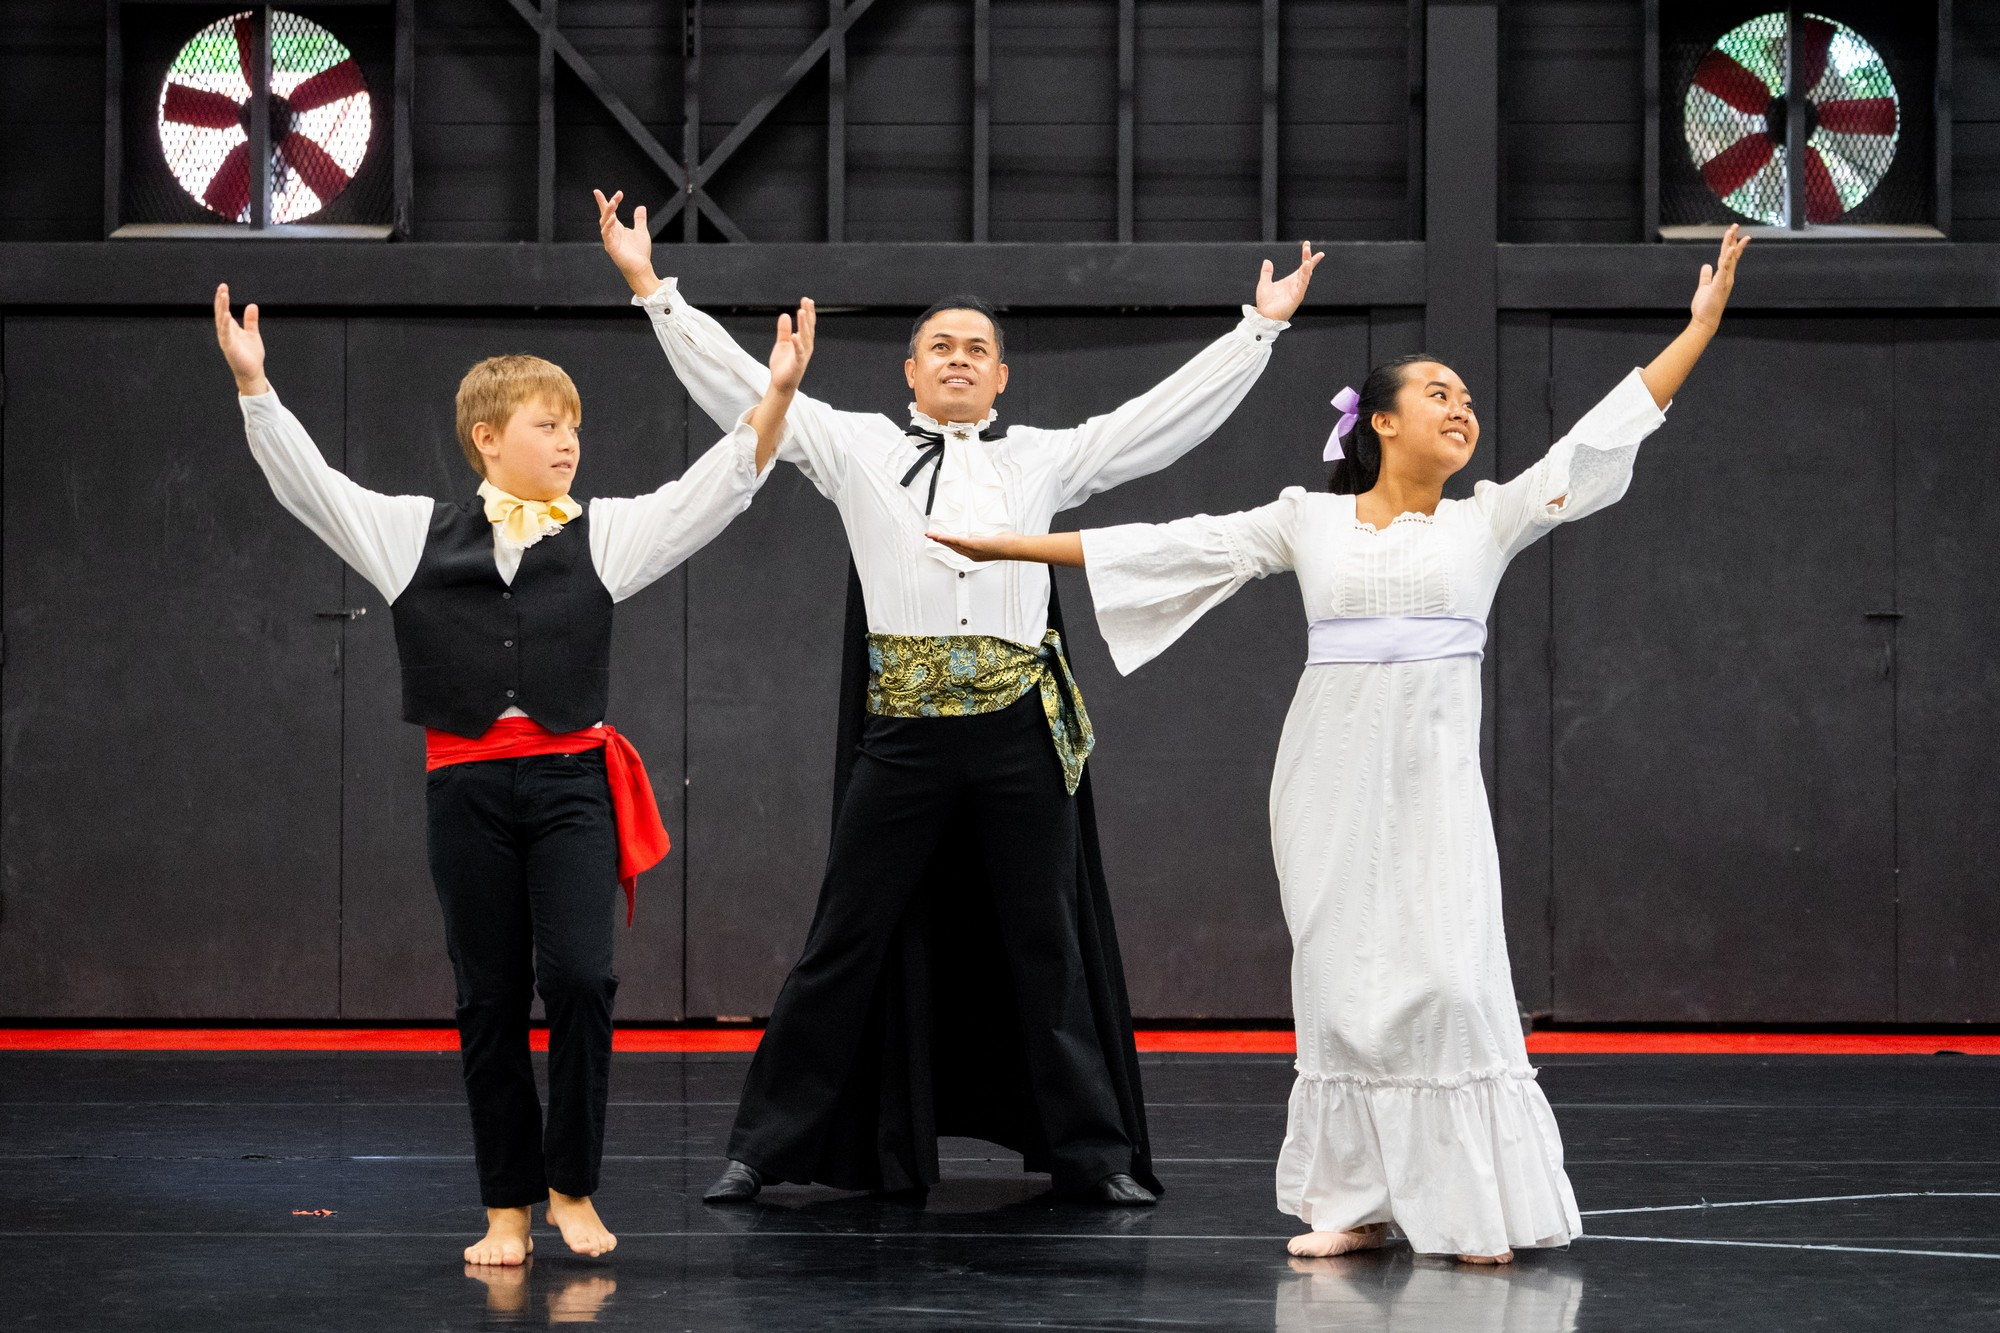 Micah Polloi, Norman Arancon, and Lydia Kamakaʻeha, in costume, with arms raised high. Norman wear dramatic sash and cape.